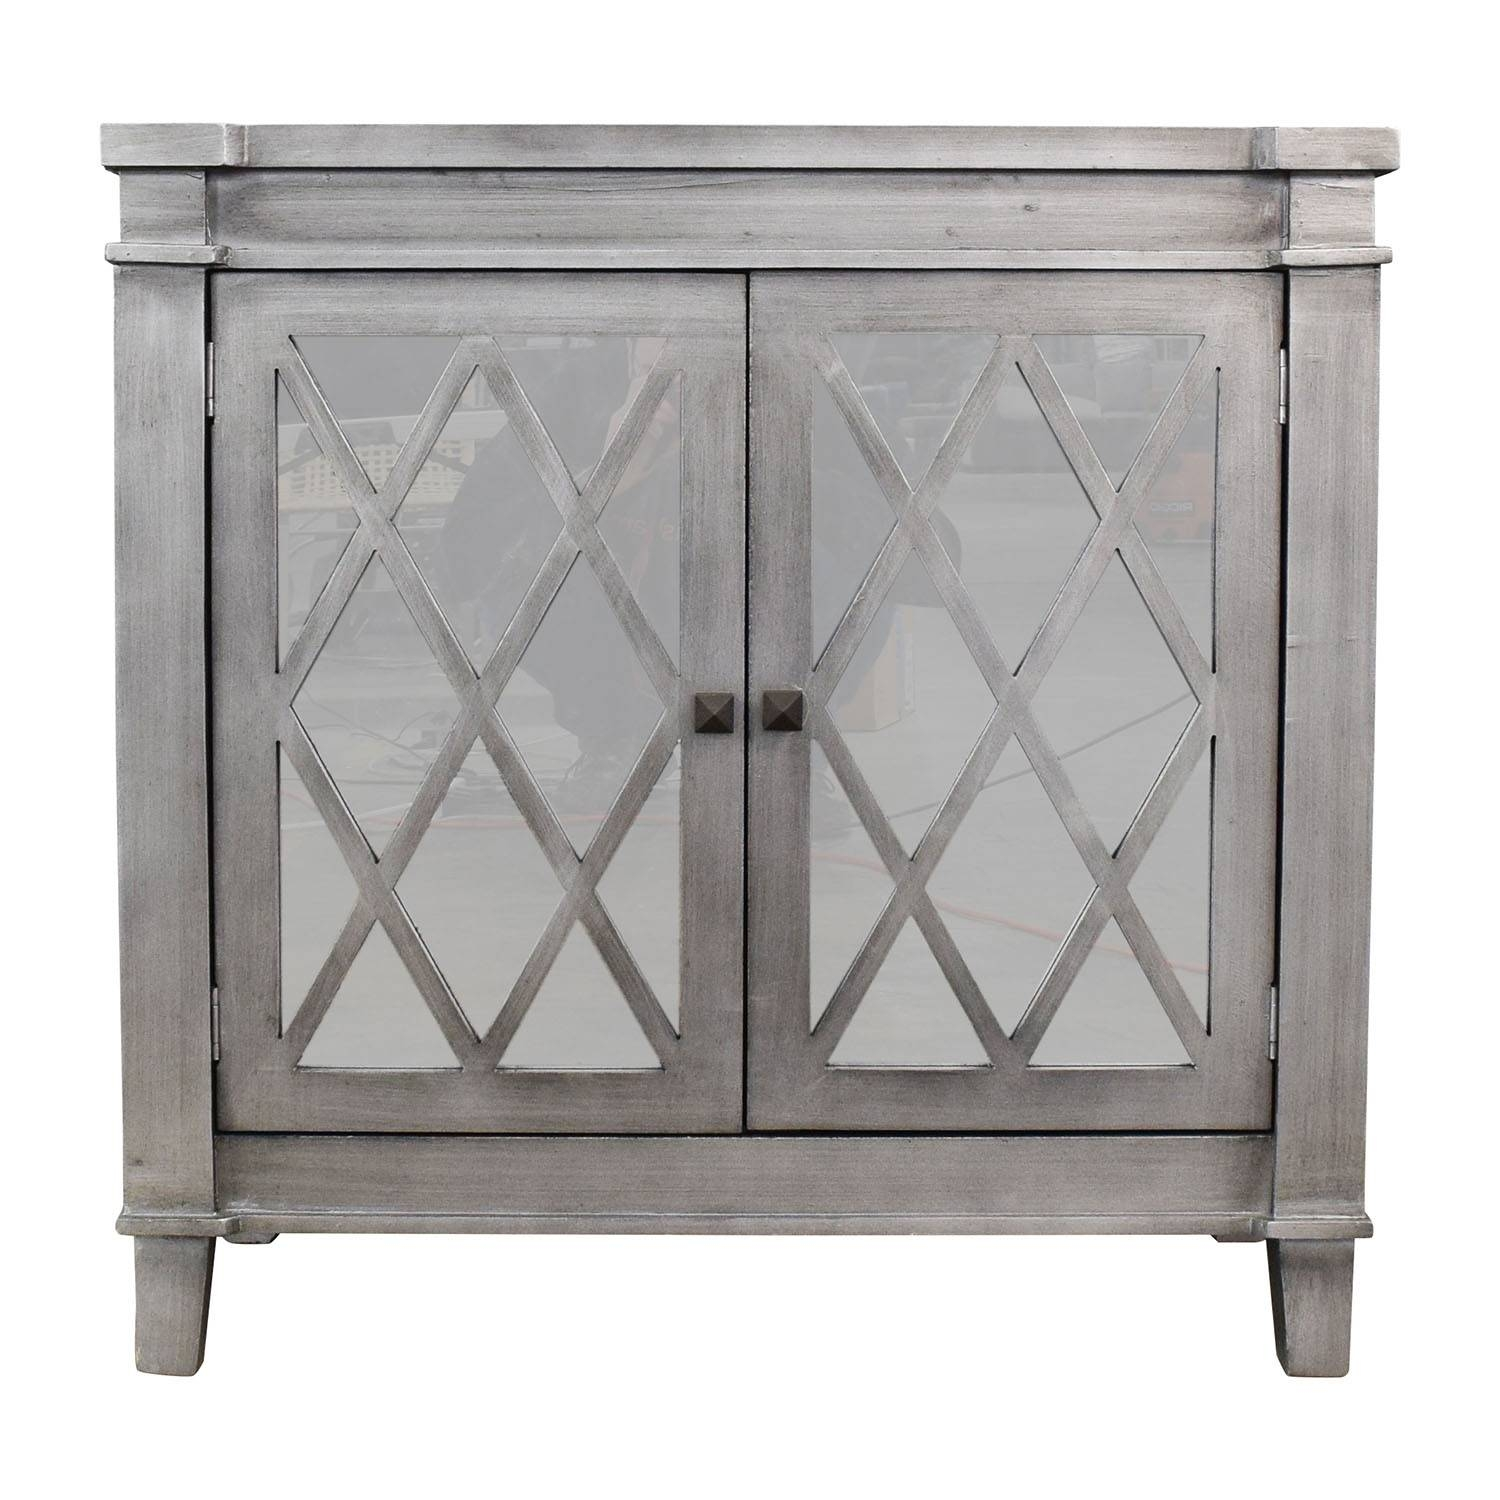 86% Off   Henredon Henredon Acquisitions Mable Topped Sideboard Inside Black And Silver Sideboards (Photo 25 of 30)